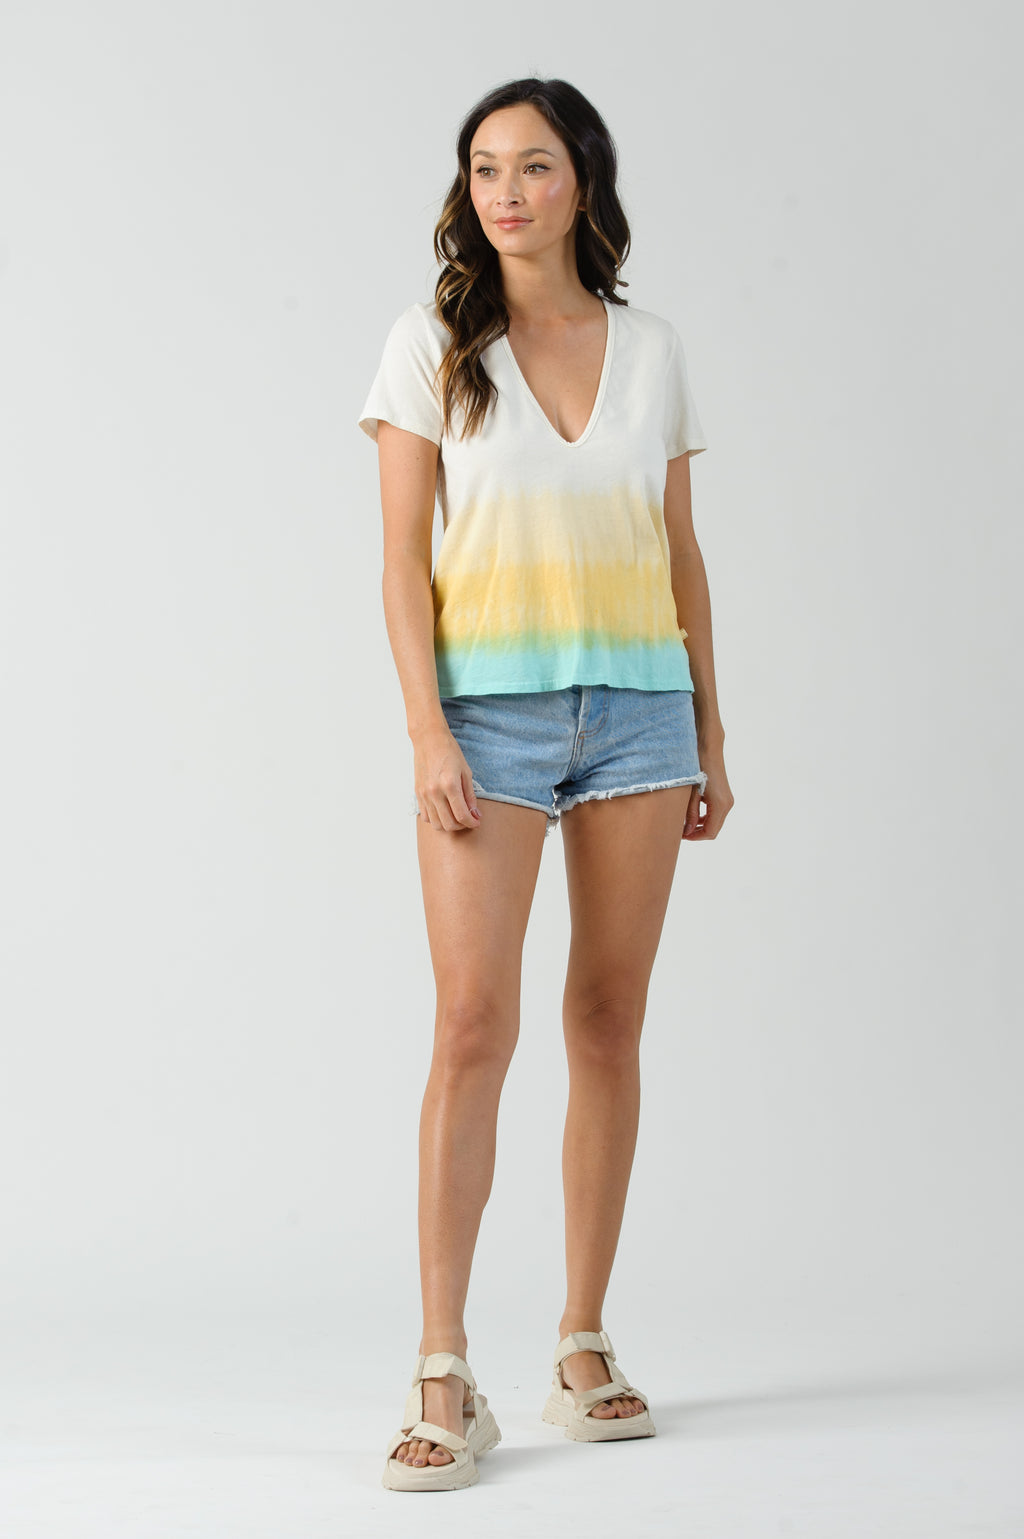 ABBY T-SHIRT DRESS | OCEAN OMBRE TIE DYE